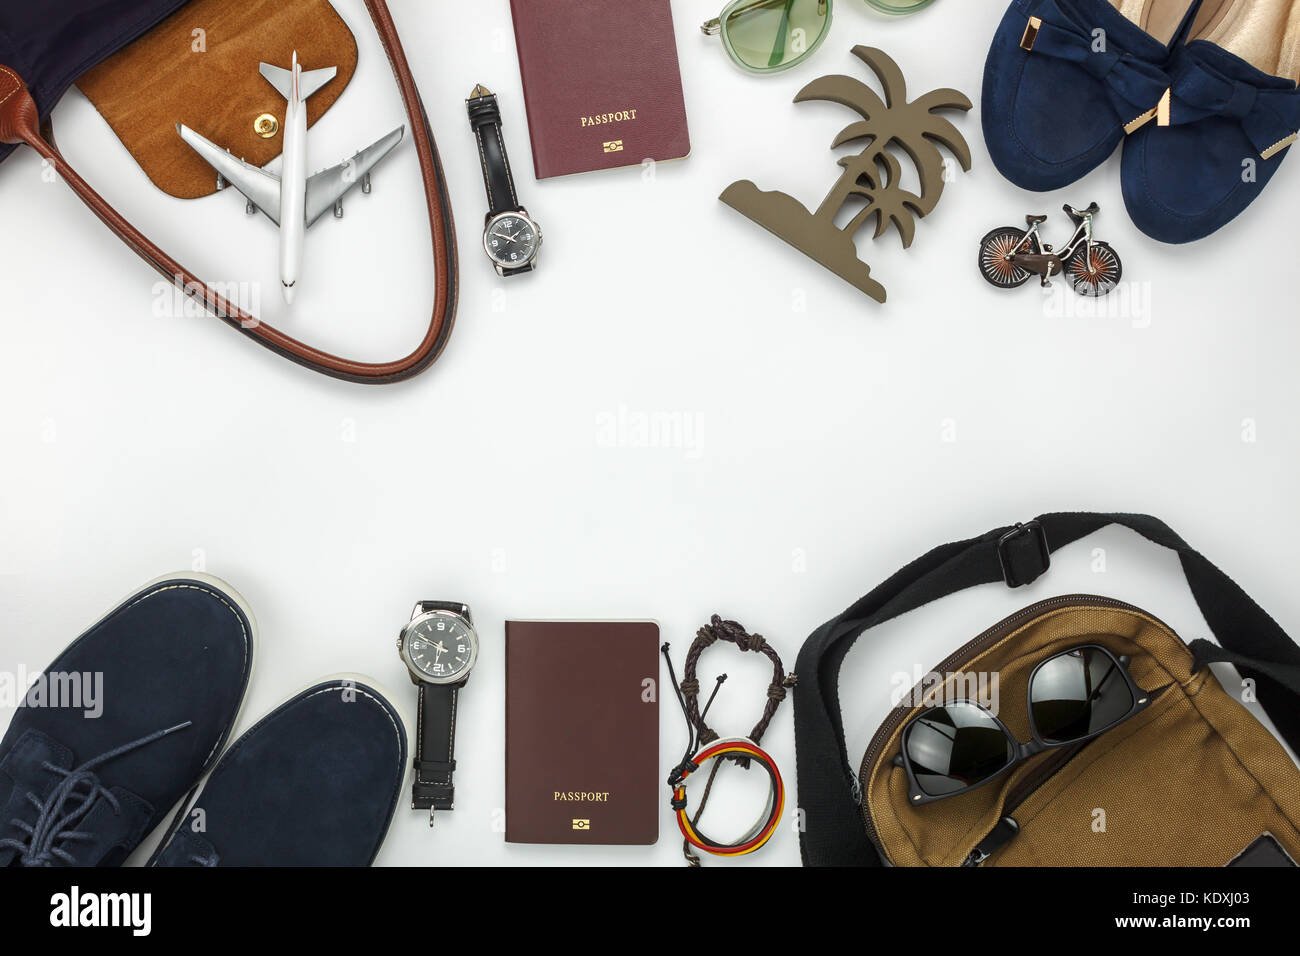 Top View Of Items For Travel With Fashion Men Women Background Stock Photo Alamy